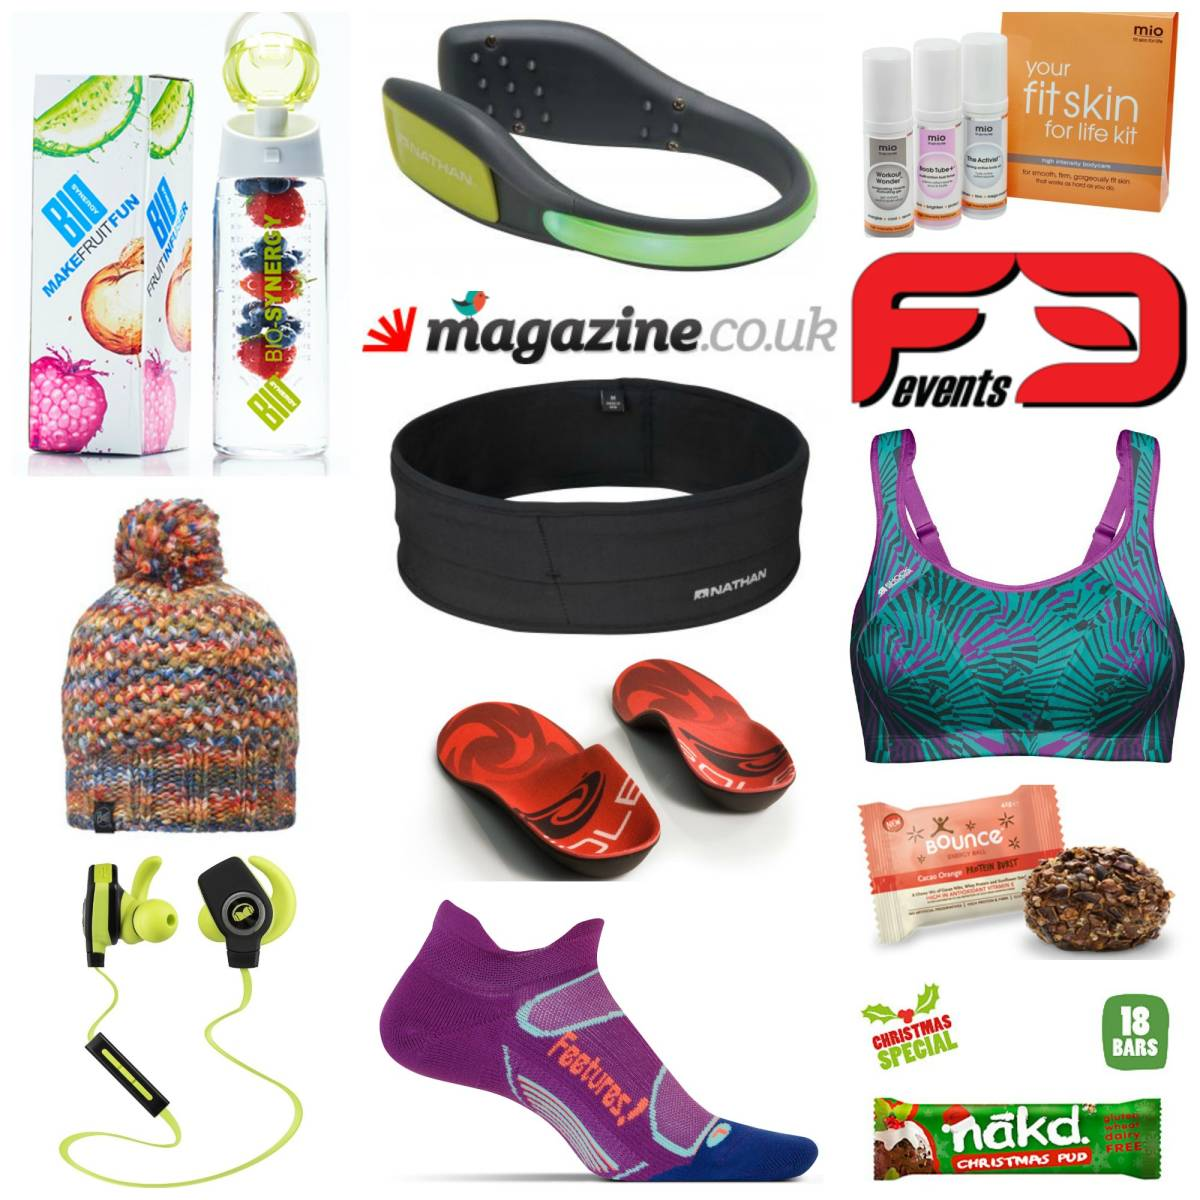 12 Days of Fitness Christmas Gift Guide